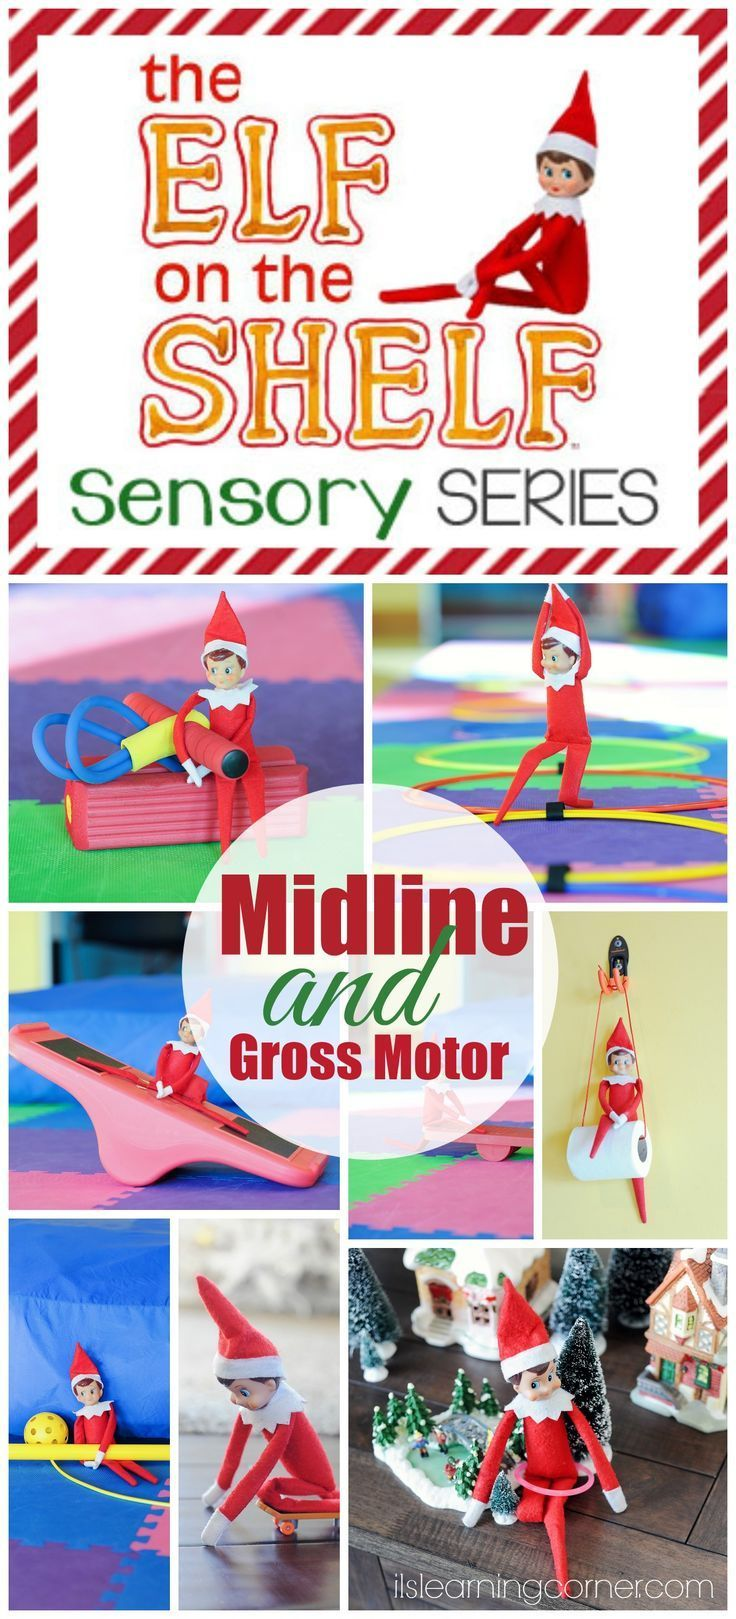 13 Gross Motor and Midline Elf on the Shelf Activities | http://ilslearningcorner.com